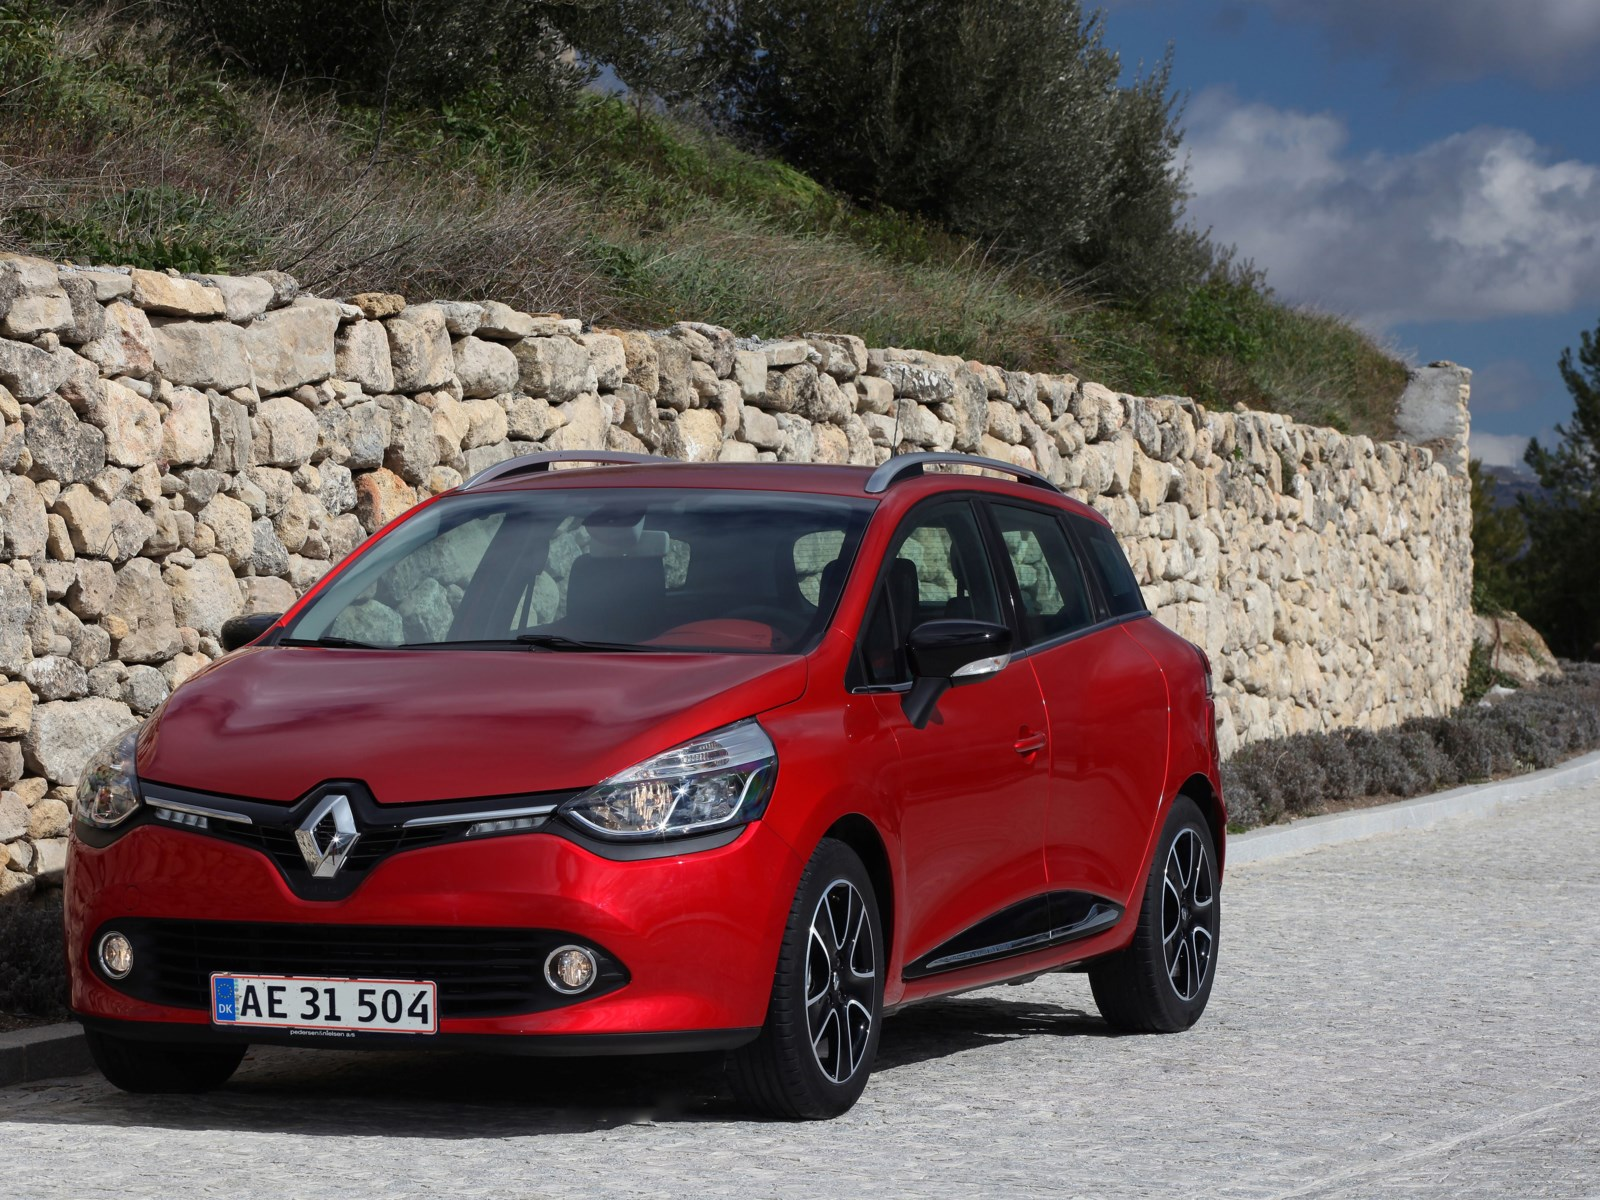 anmeldelse renault clio sport tourer 1 5 dci dynamique biltorvet. Black Bedroom Furniture Sets. Home Design Ideas